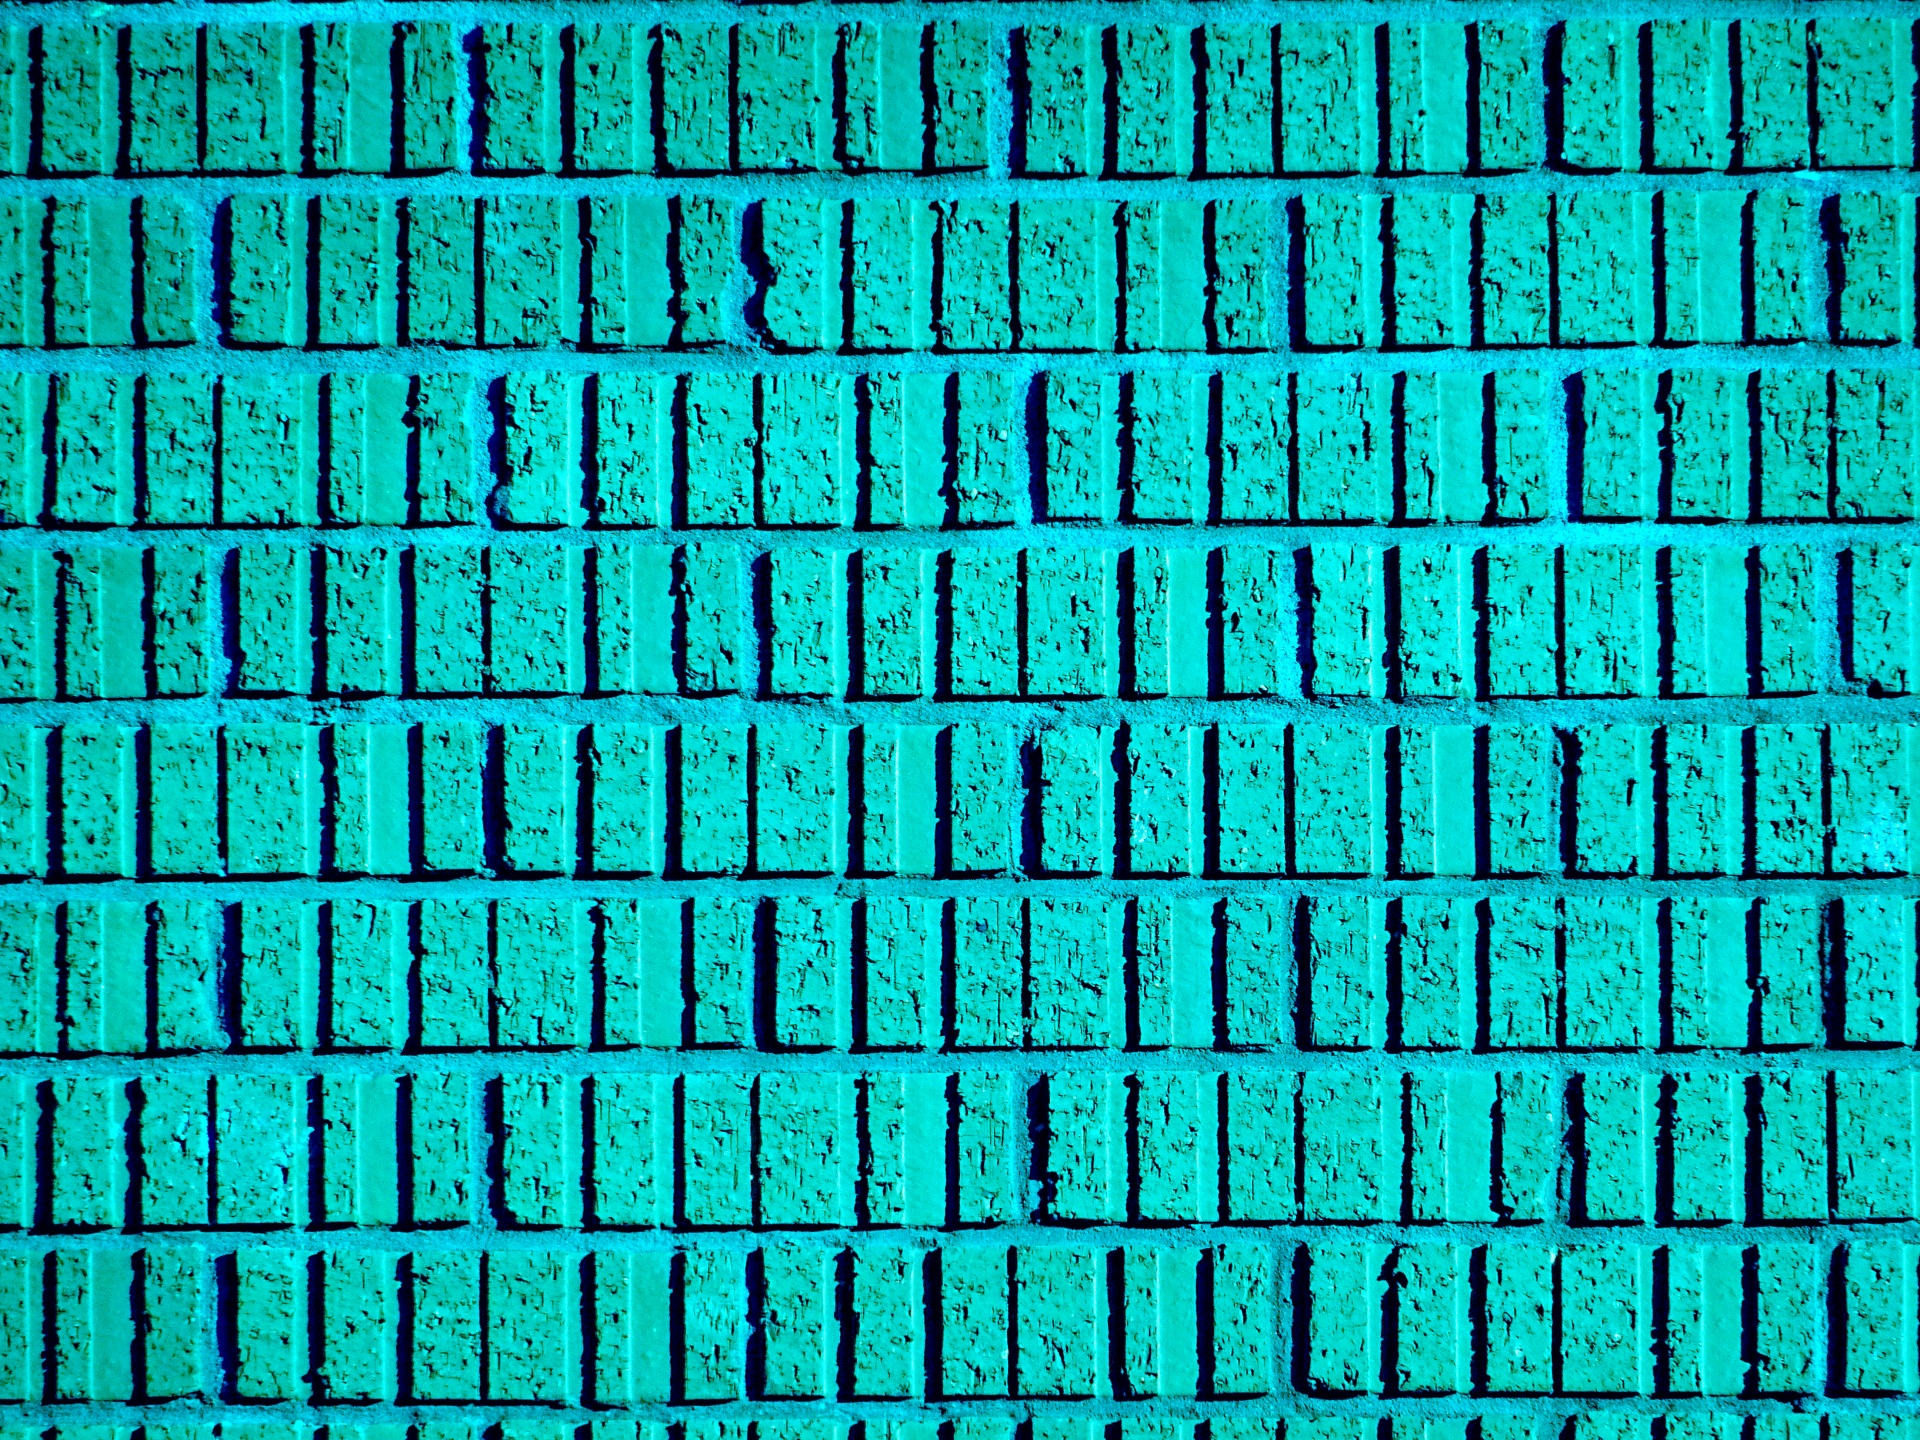 Turquoise Brick Wallpaper Turquoise Brick Wall Background Free Stock Photo Public